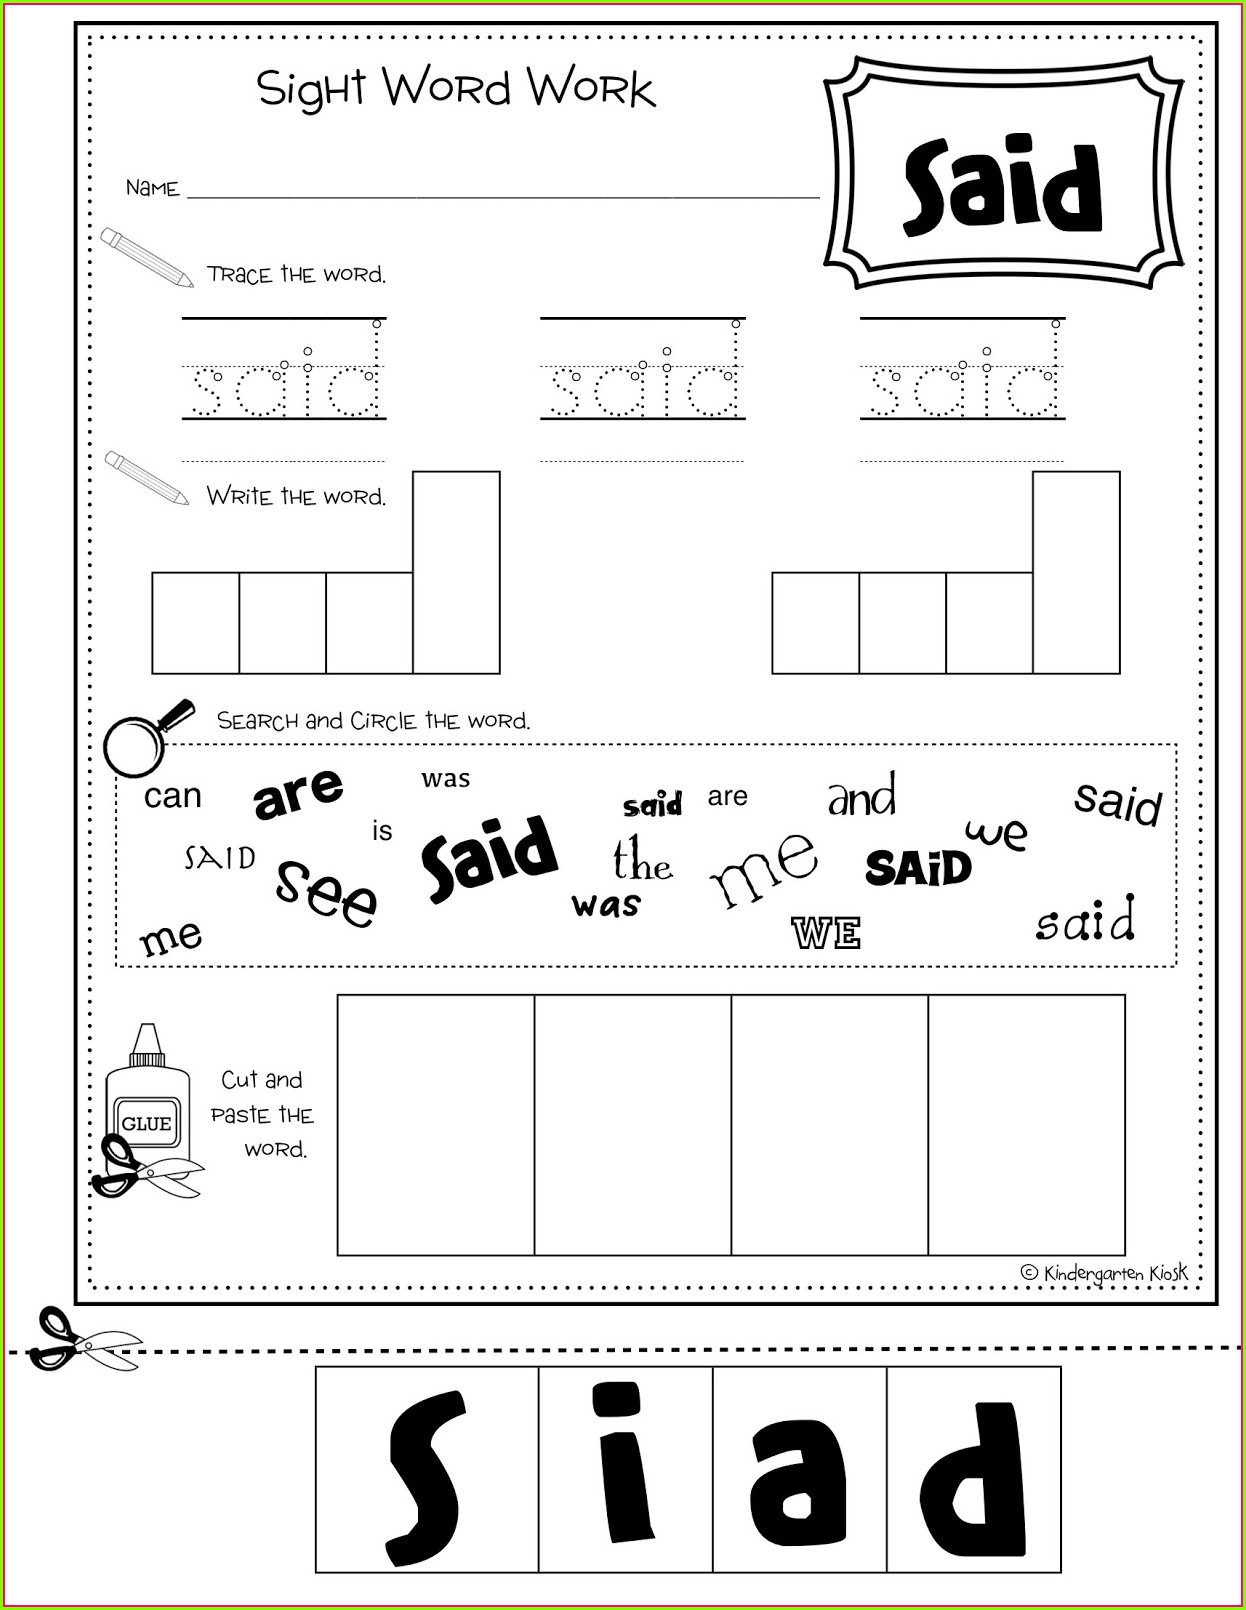 Sight Word Worksheet Maker